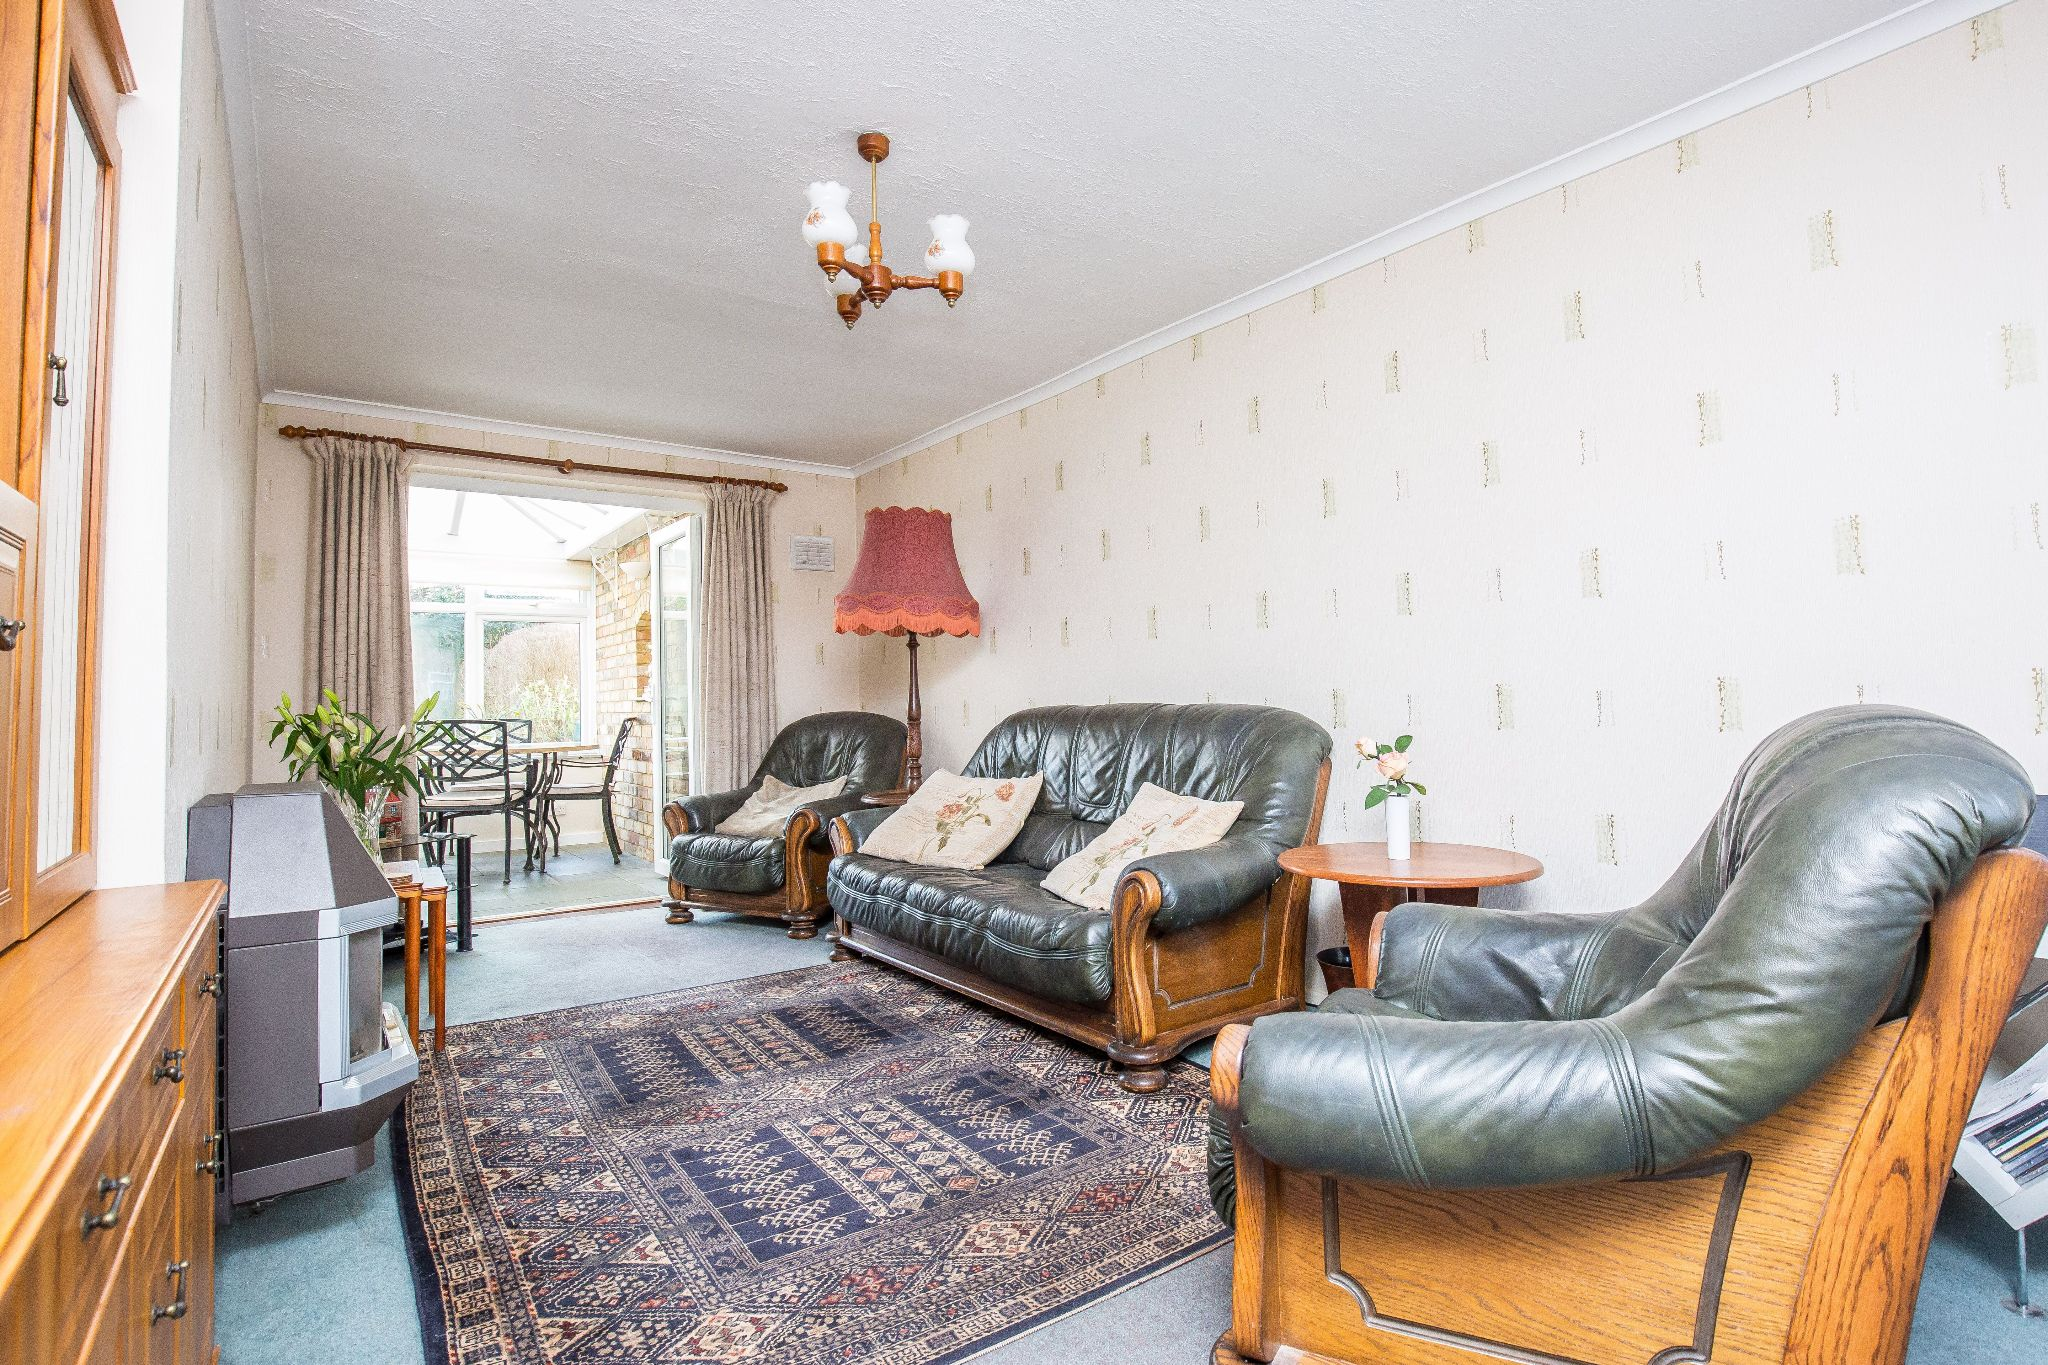 3 bedroom mid terraced house SSTC in Welham Green - Photograph 4